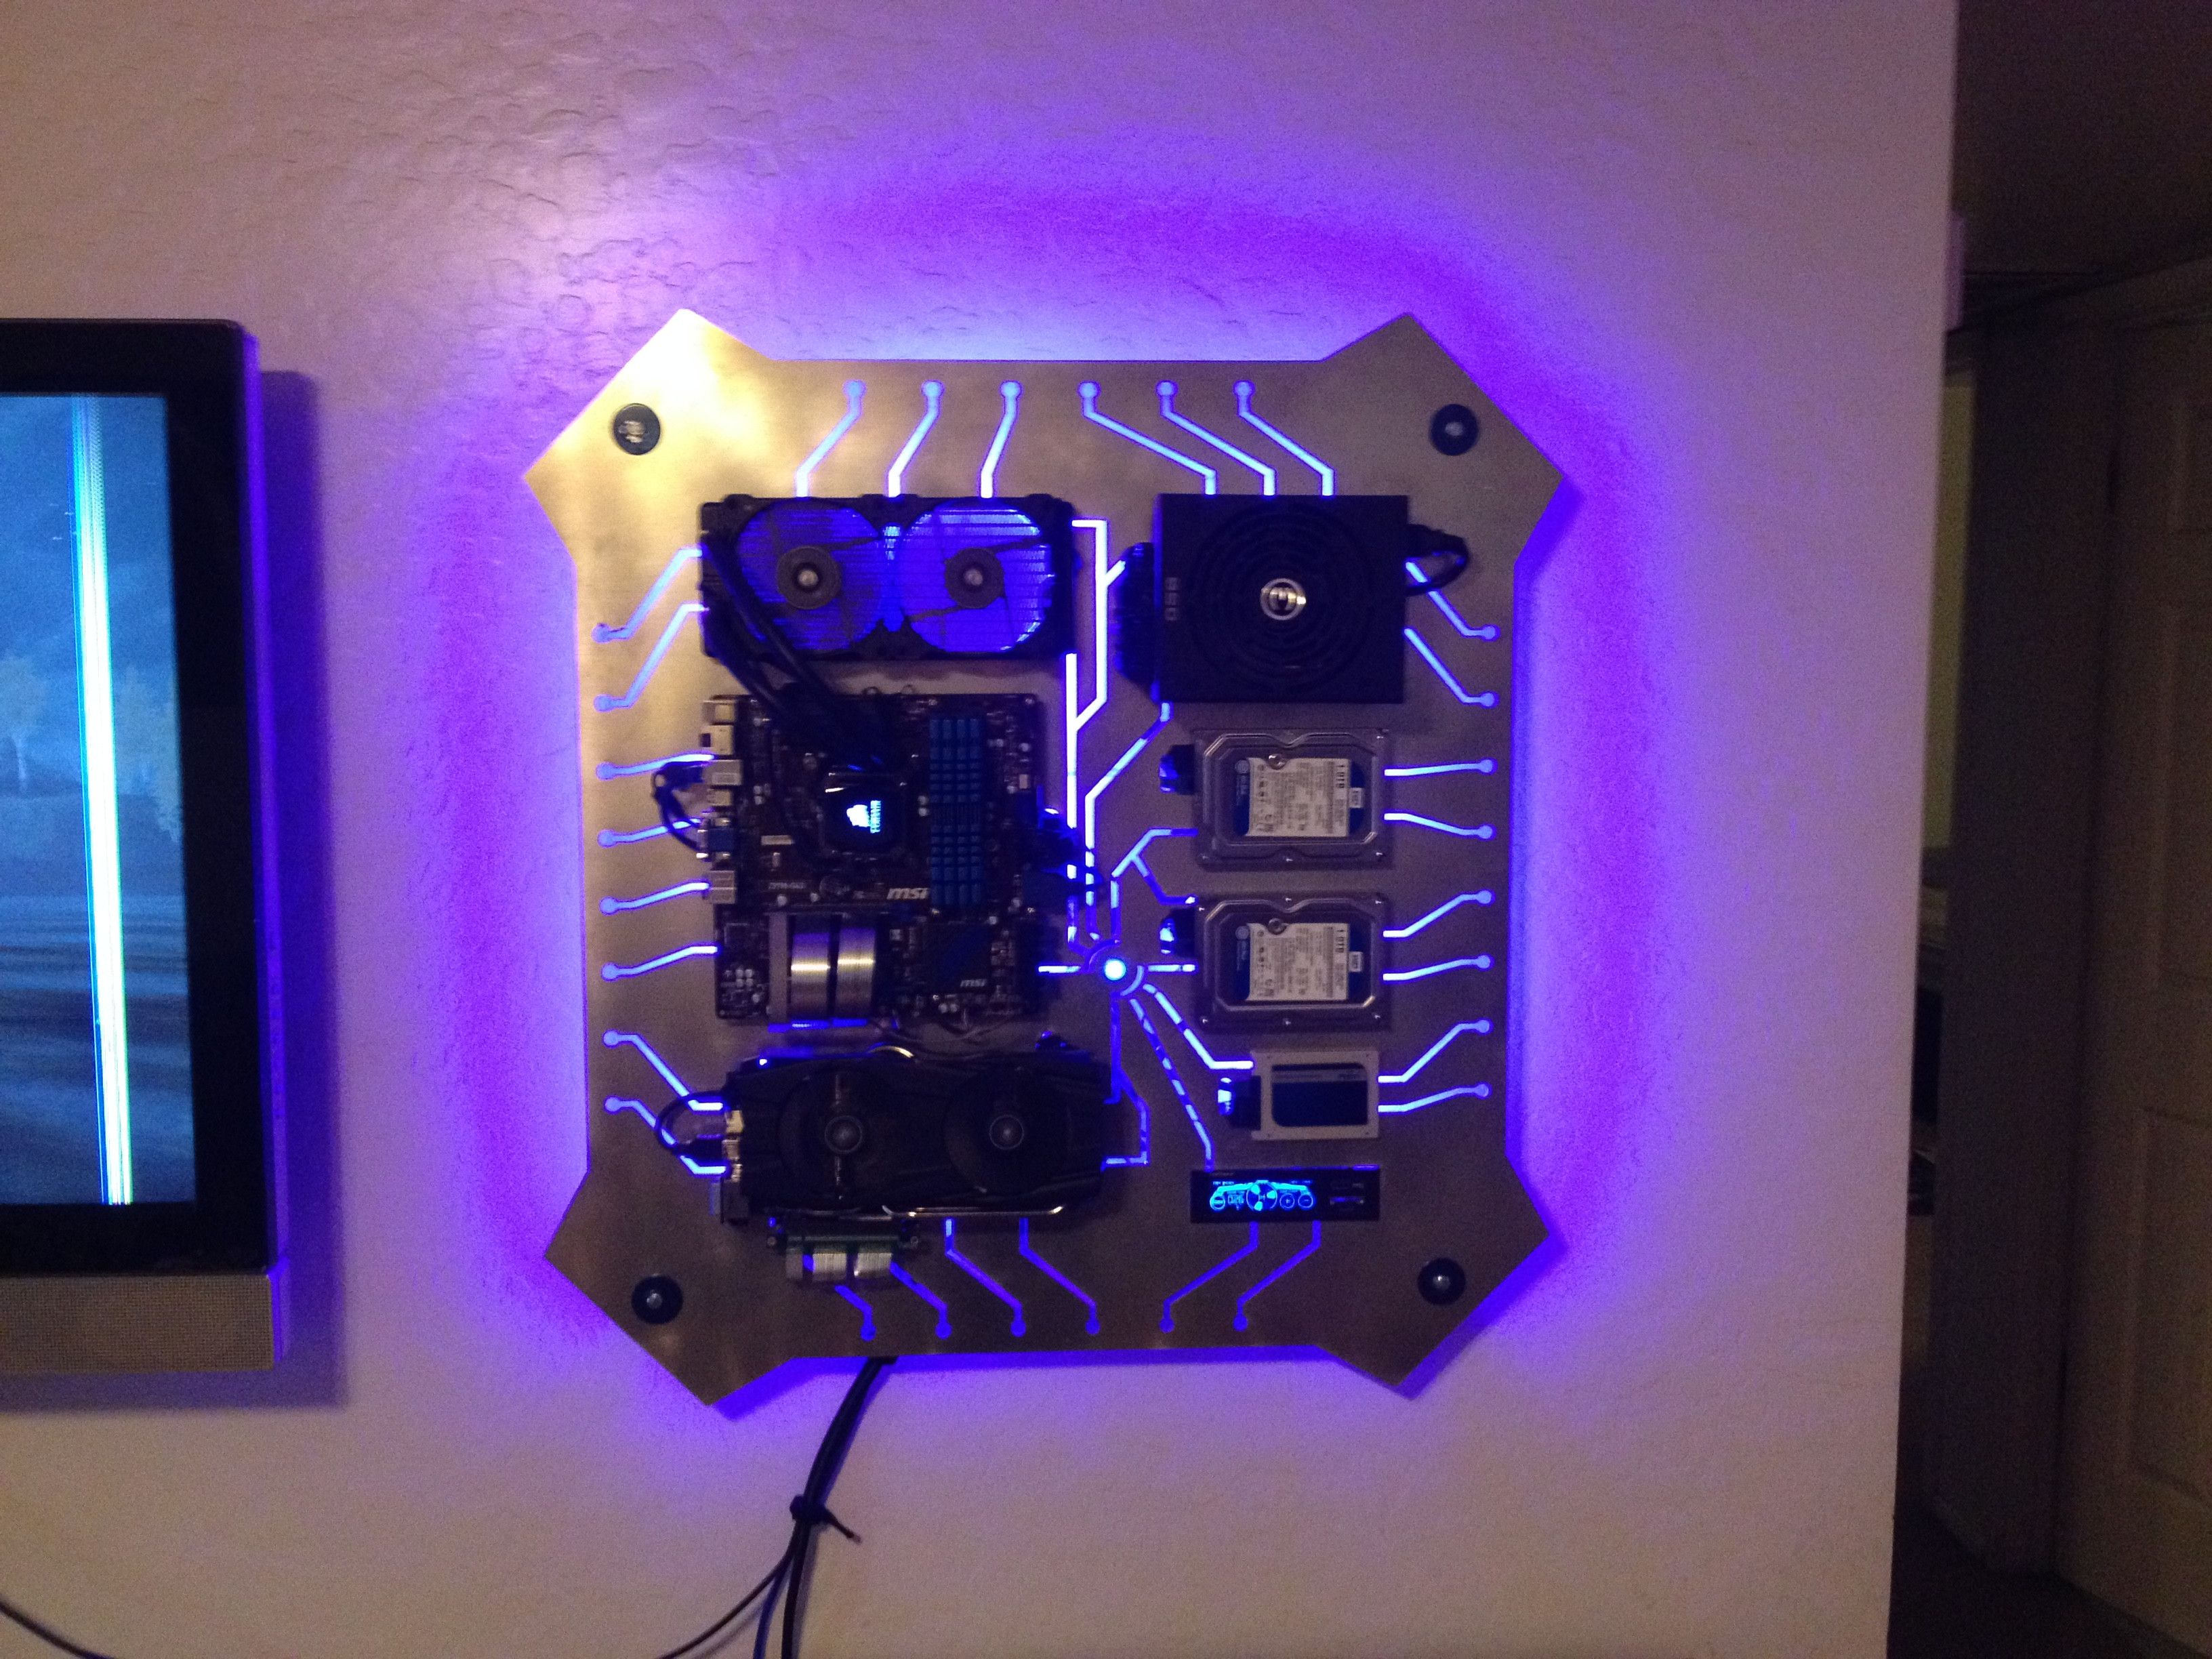 Pc Schreibtisch I Made A Custom Wall Mounted Pc For My So, And I Want To